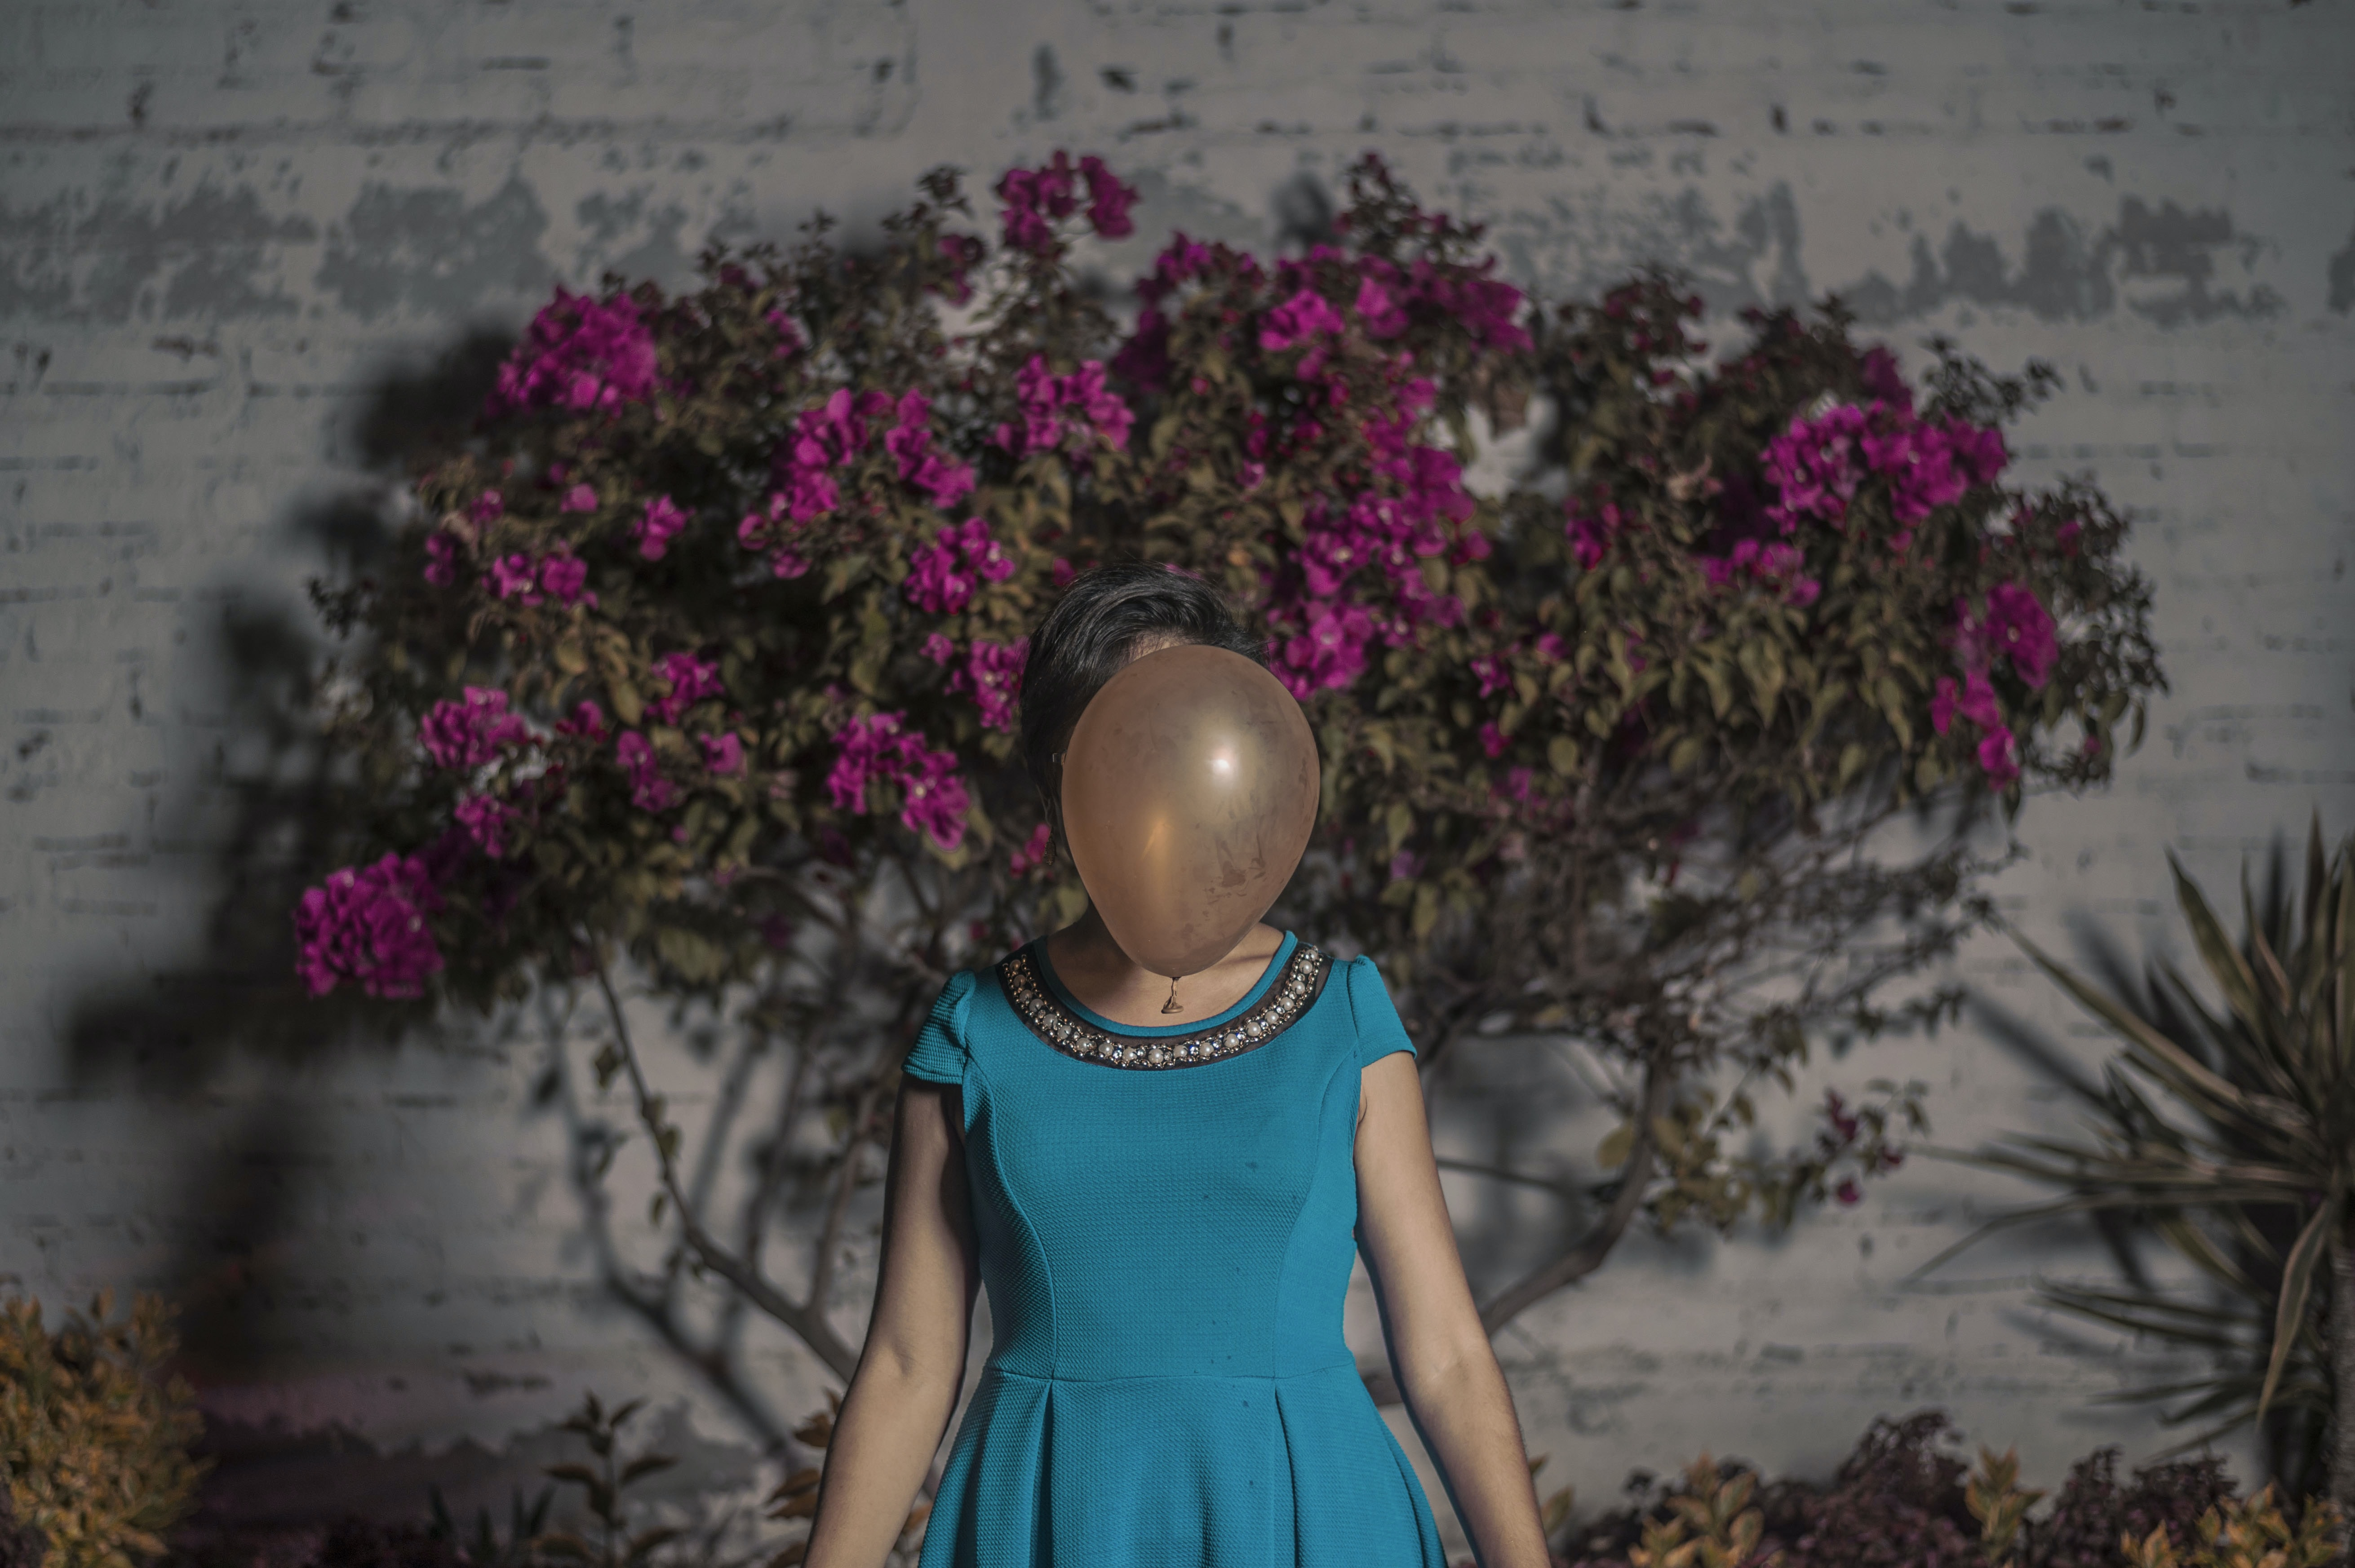 woman standing in front of brown balloon